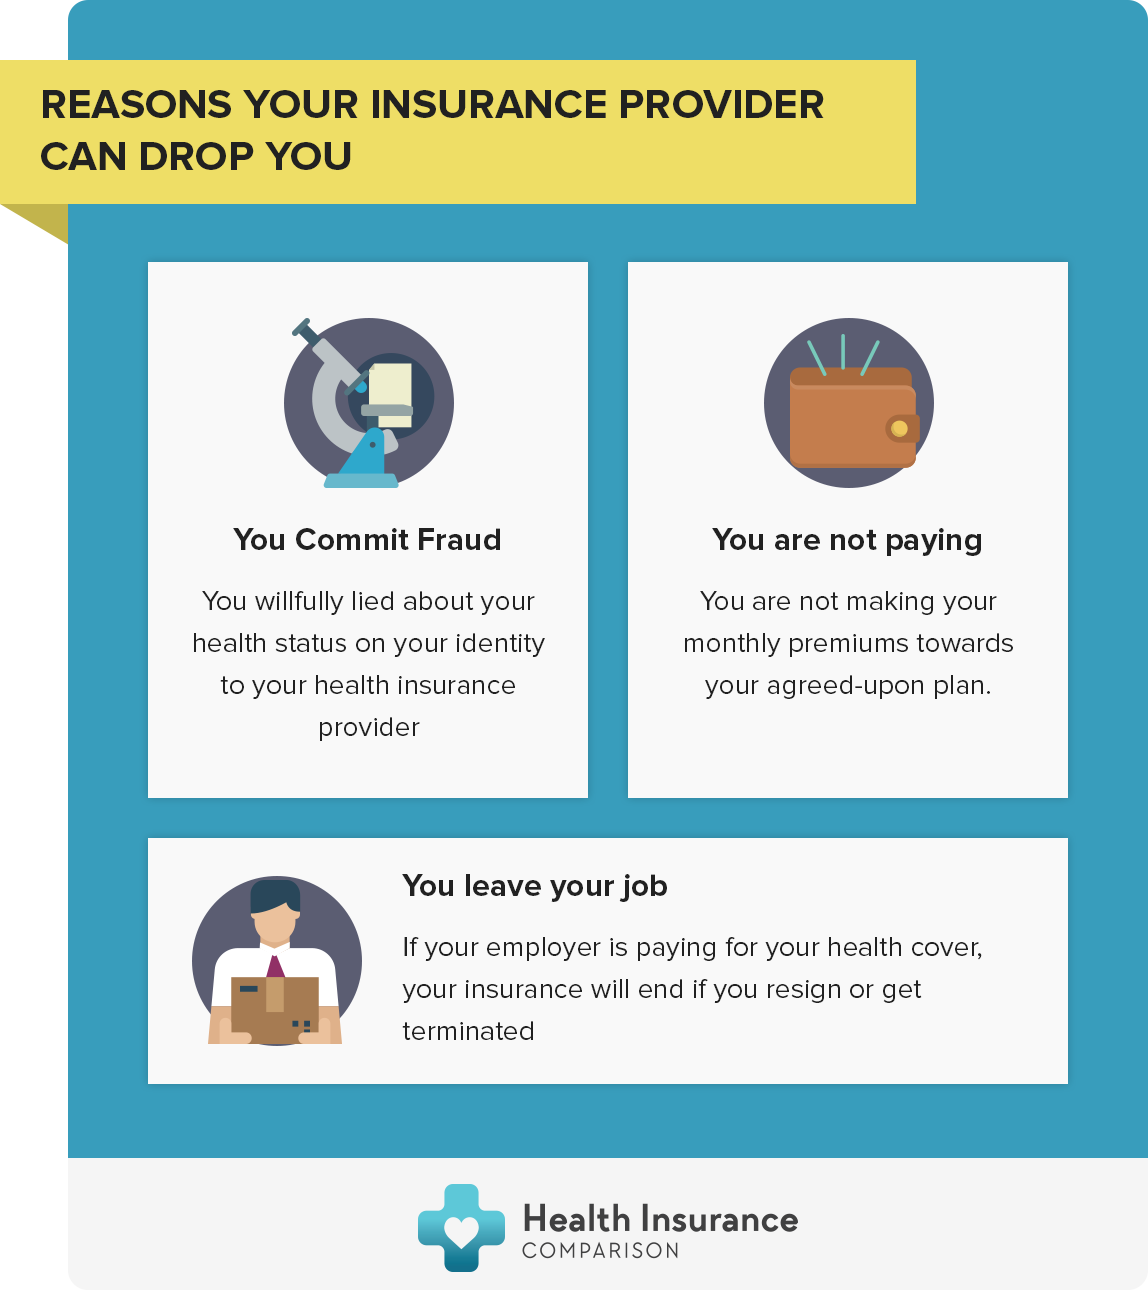 Reasons your health insurer can drop you